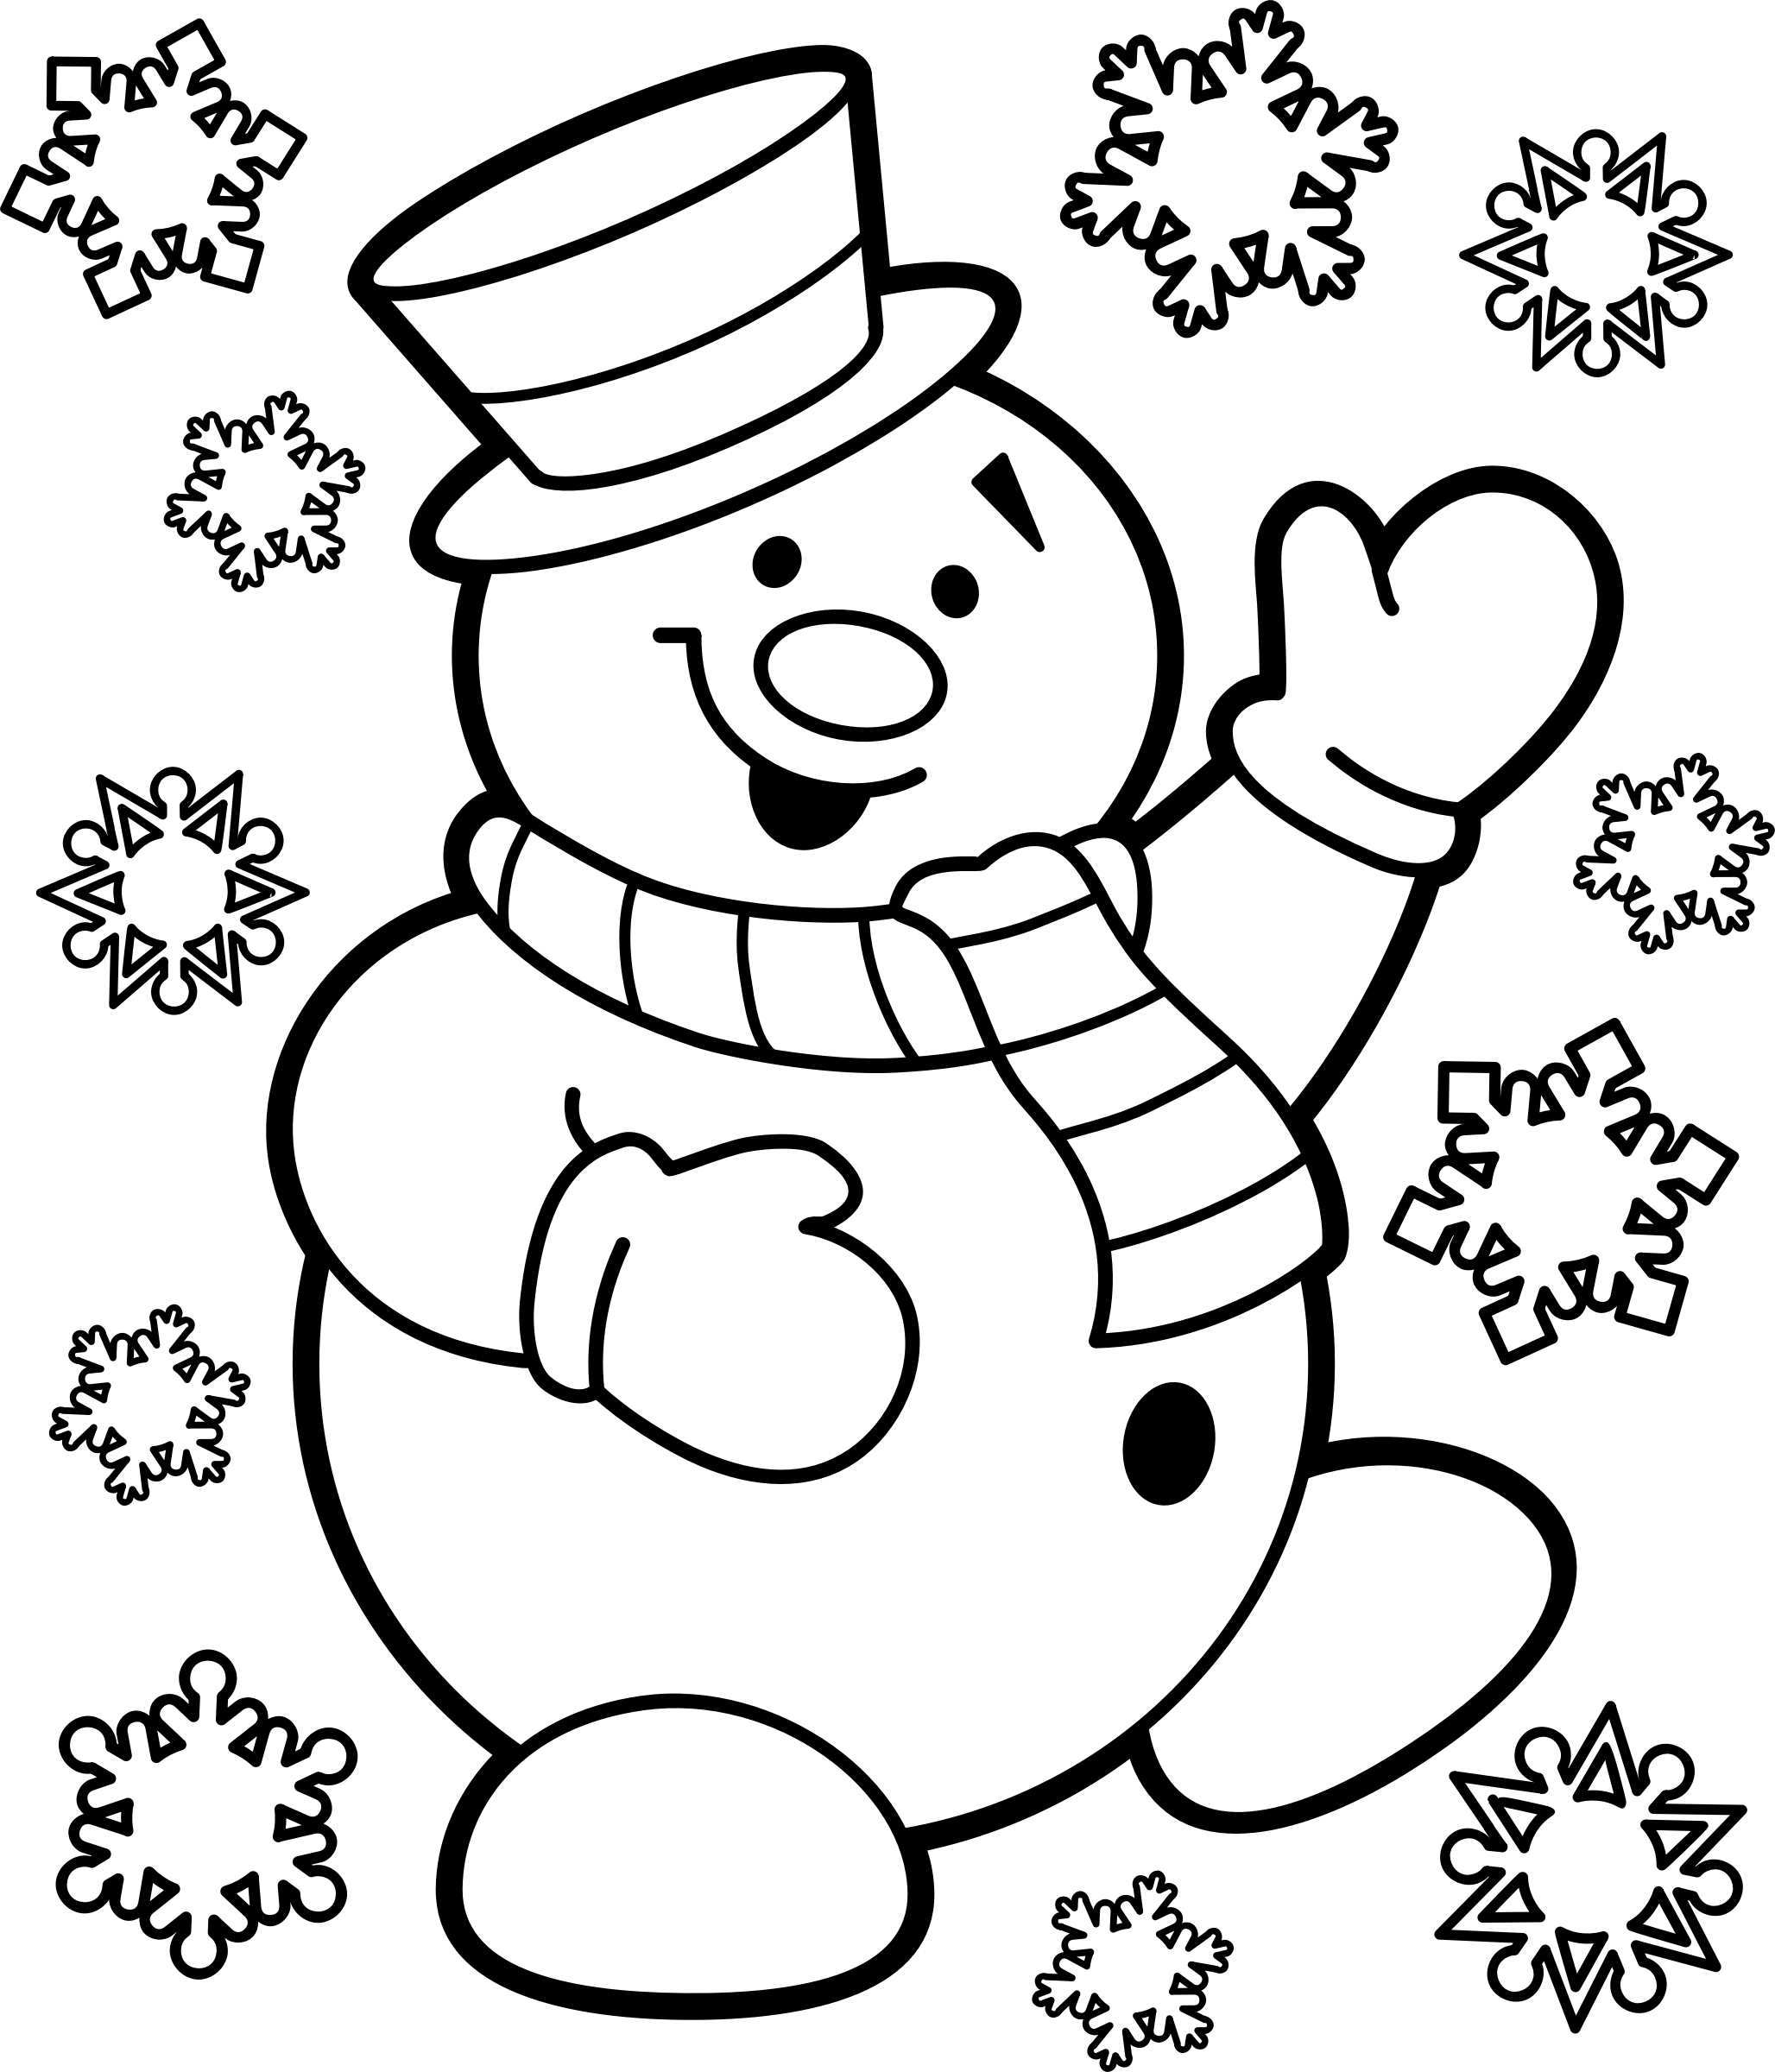 Christmas icons png free. Vector snowman black and white png black and white download